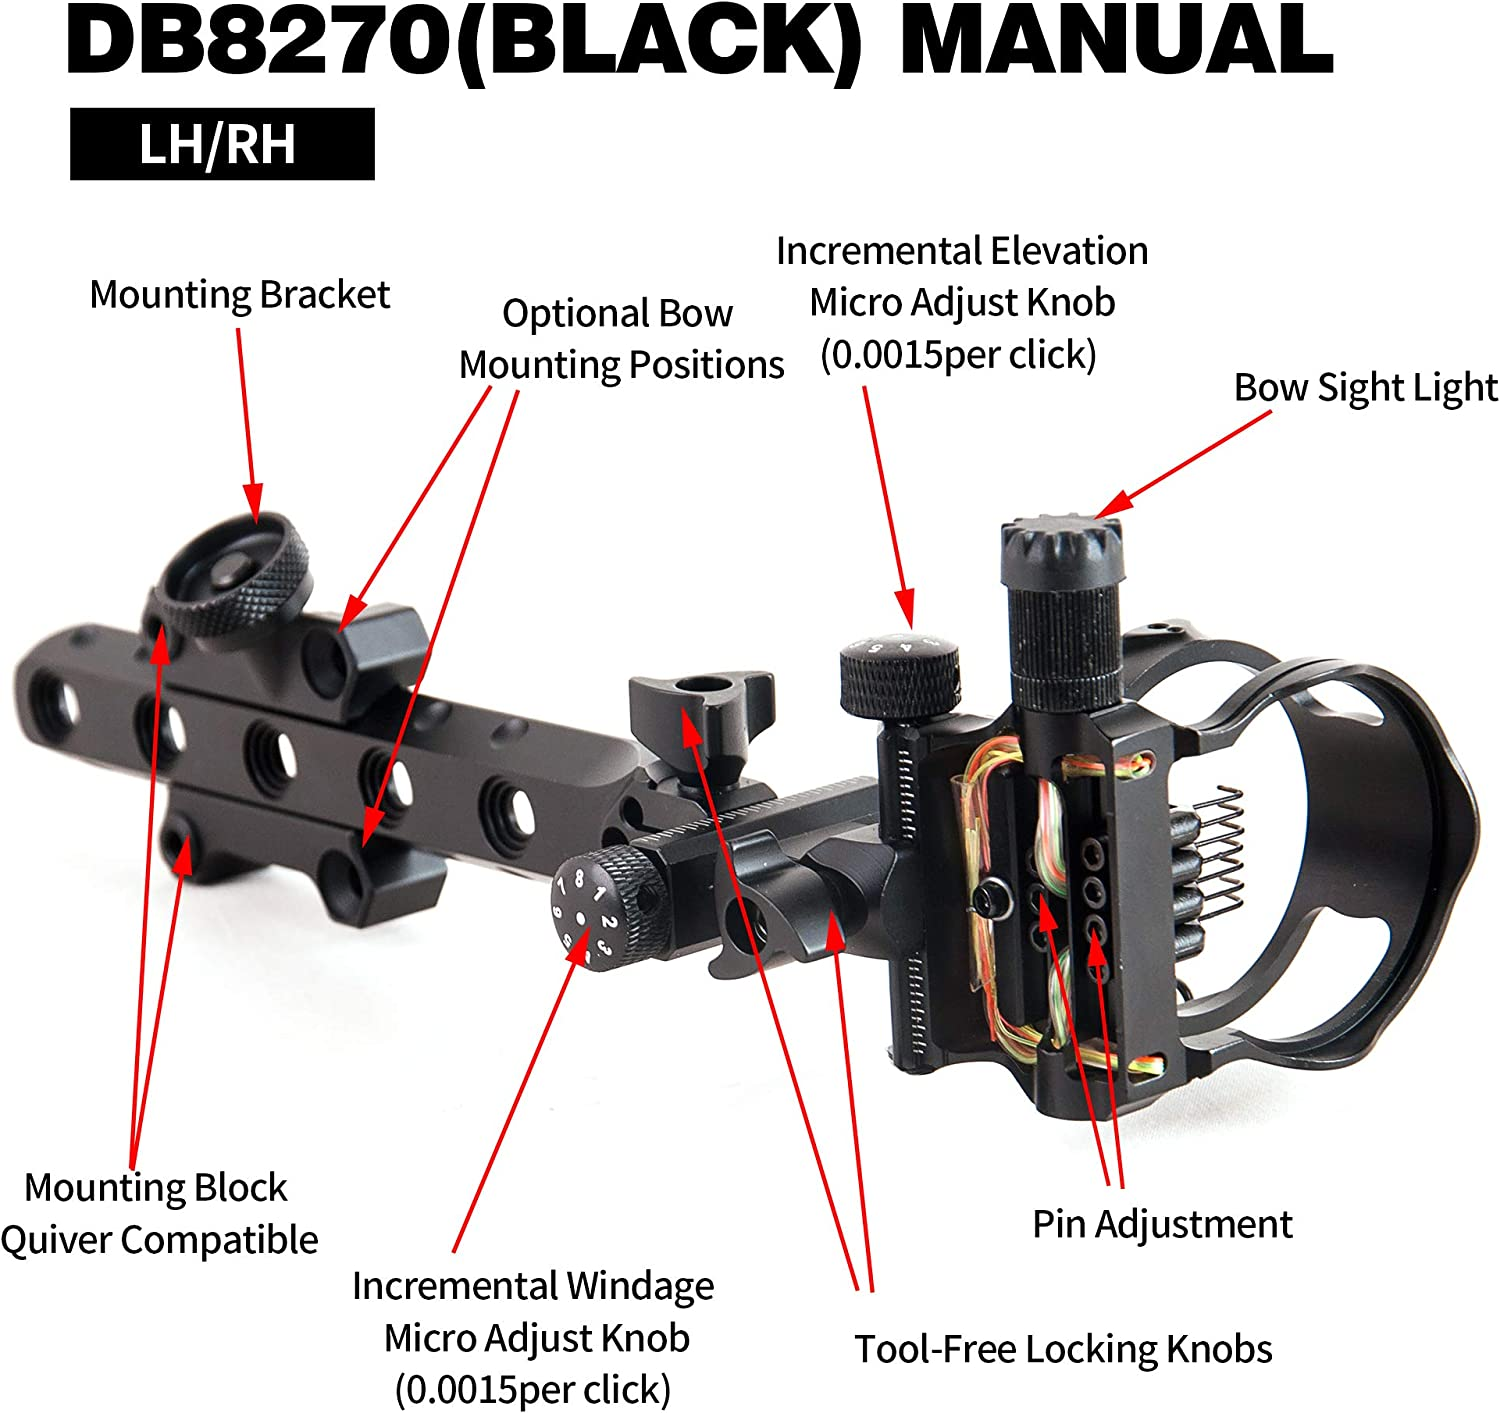 5 Pins//7 Pins Compound Bow Sight .019 Tool-Less Bow Sight with Micro Adjust Detachable Bracket LED Sight Light Left and Right Hand